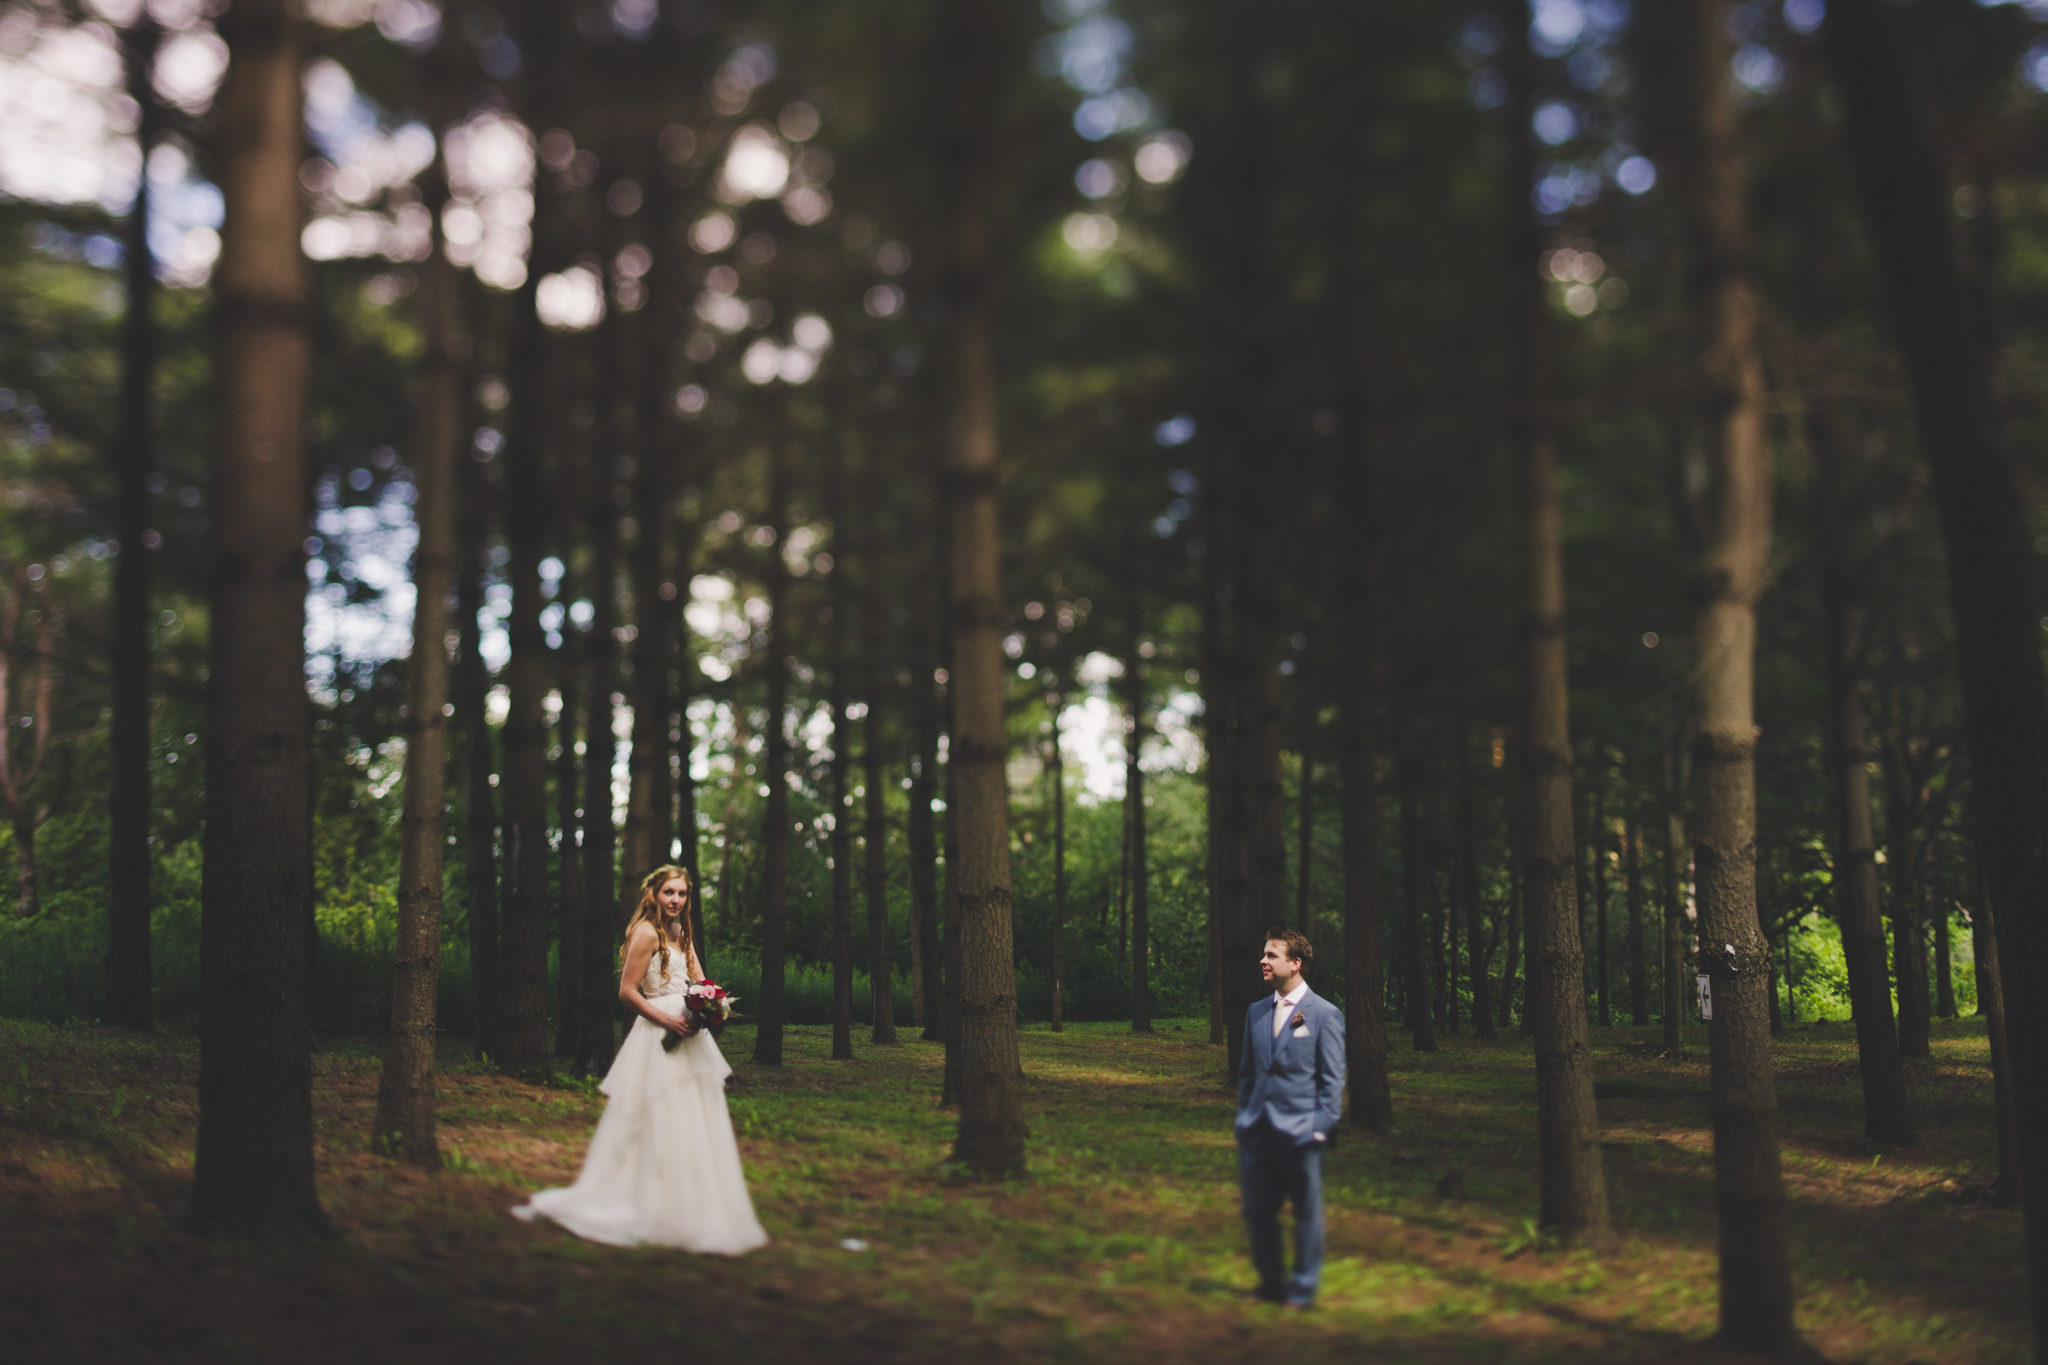 Bride-groom-wedding-forest-trees